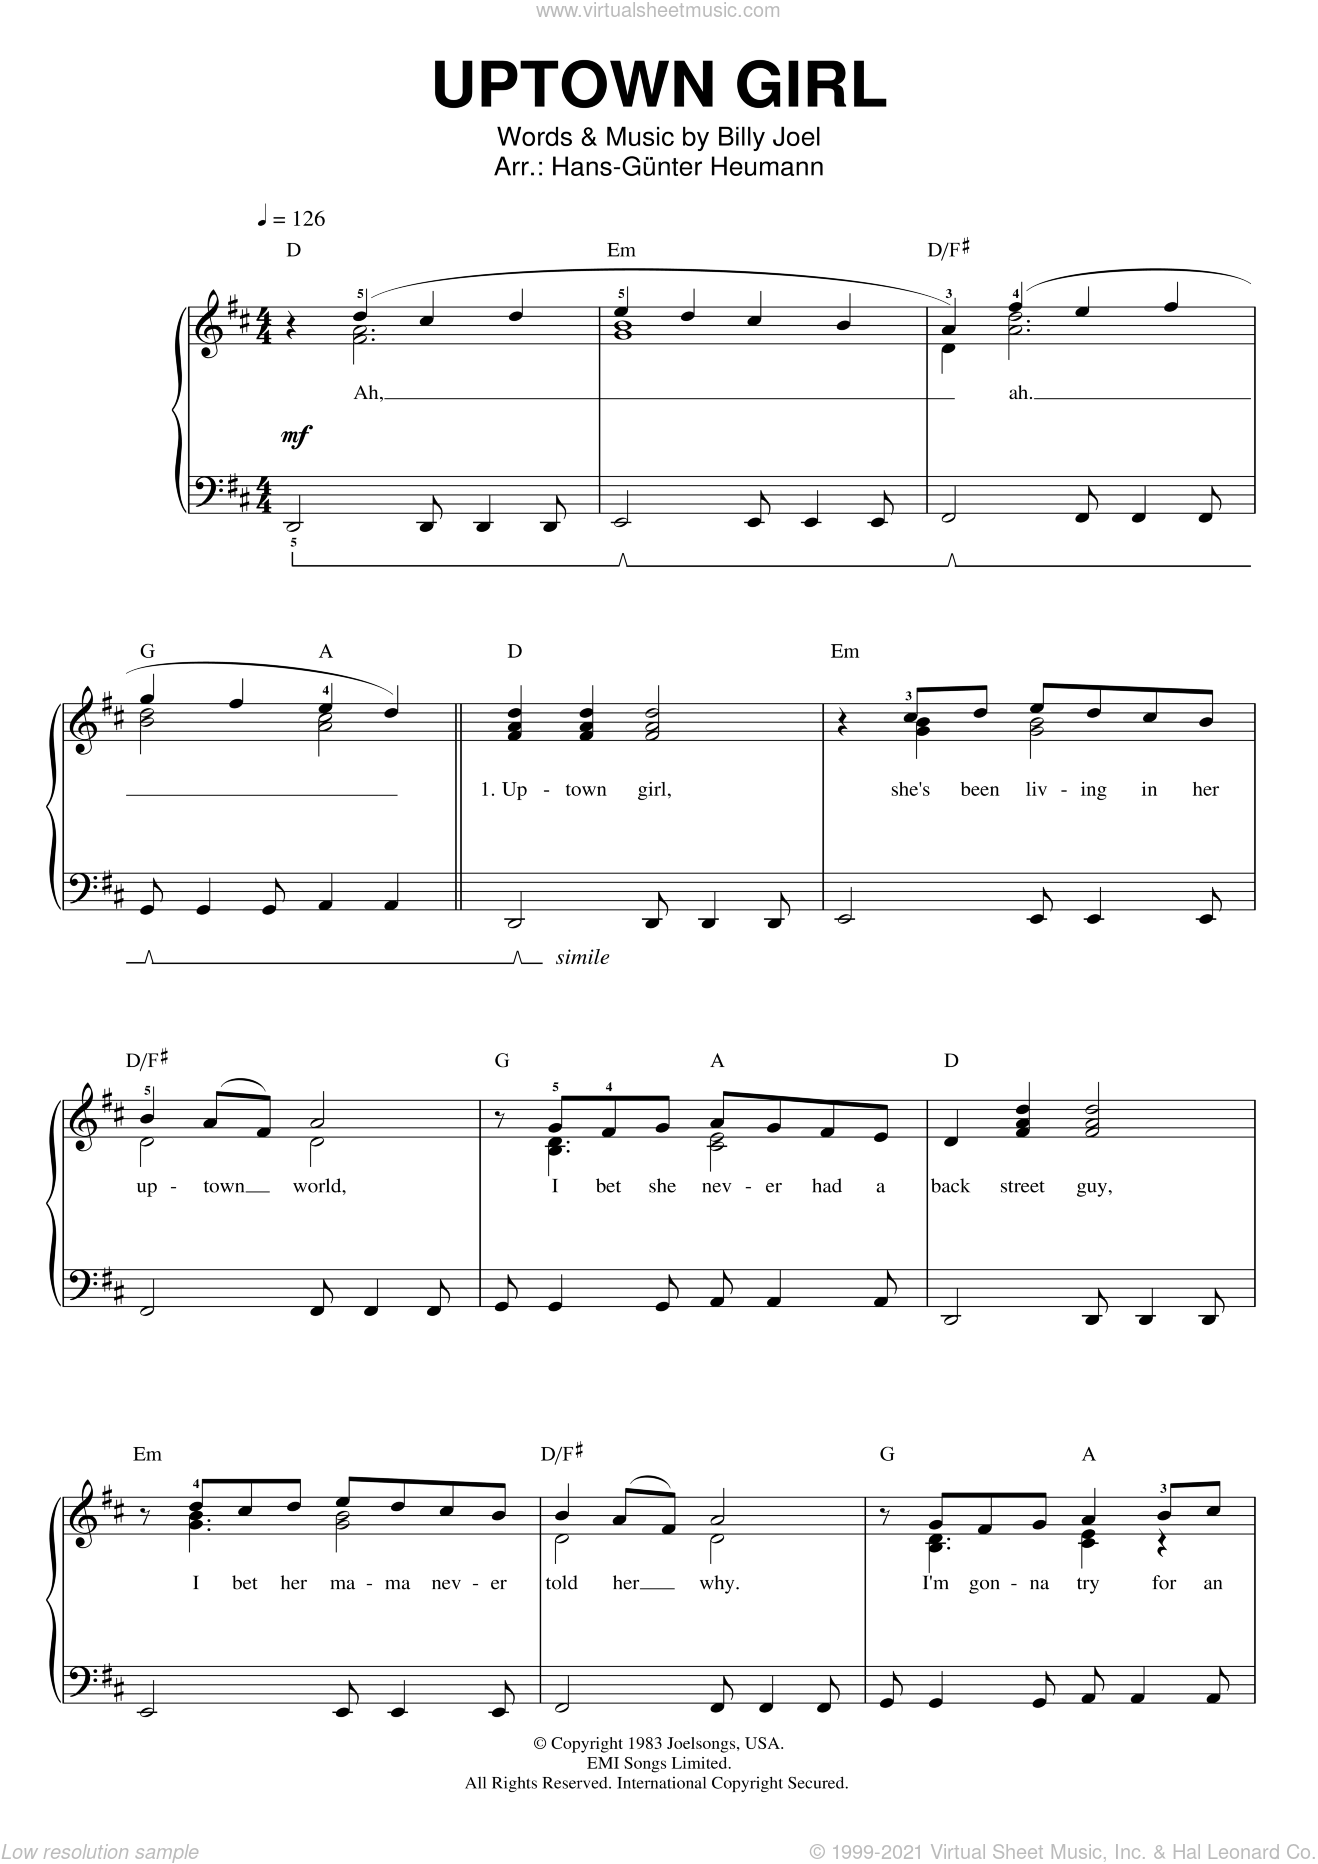 Uptown Girl sheet music for piano solo by Billy Joel